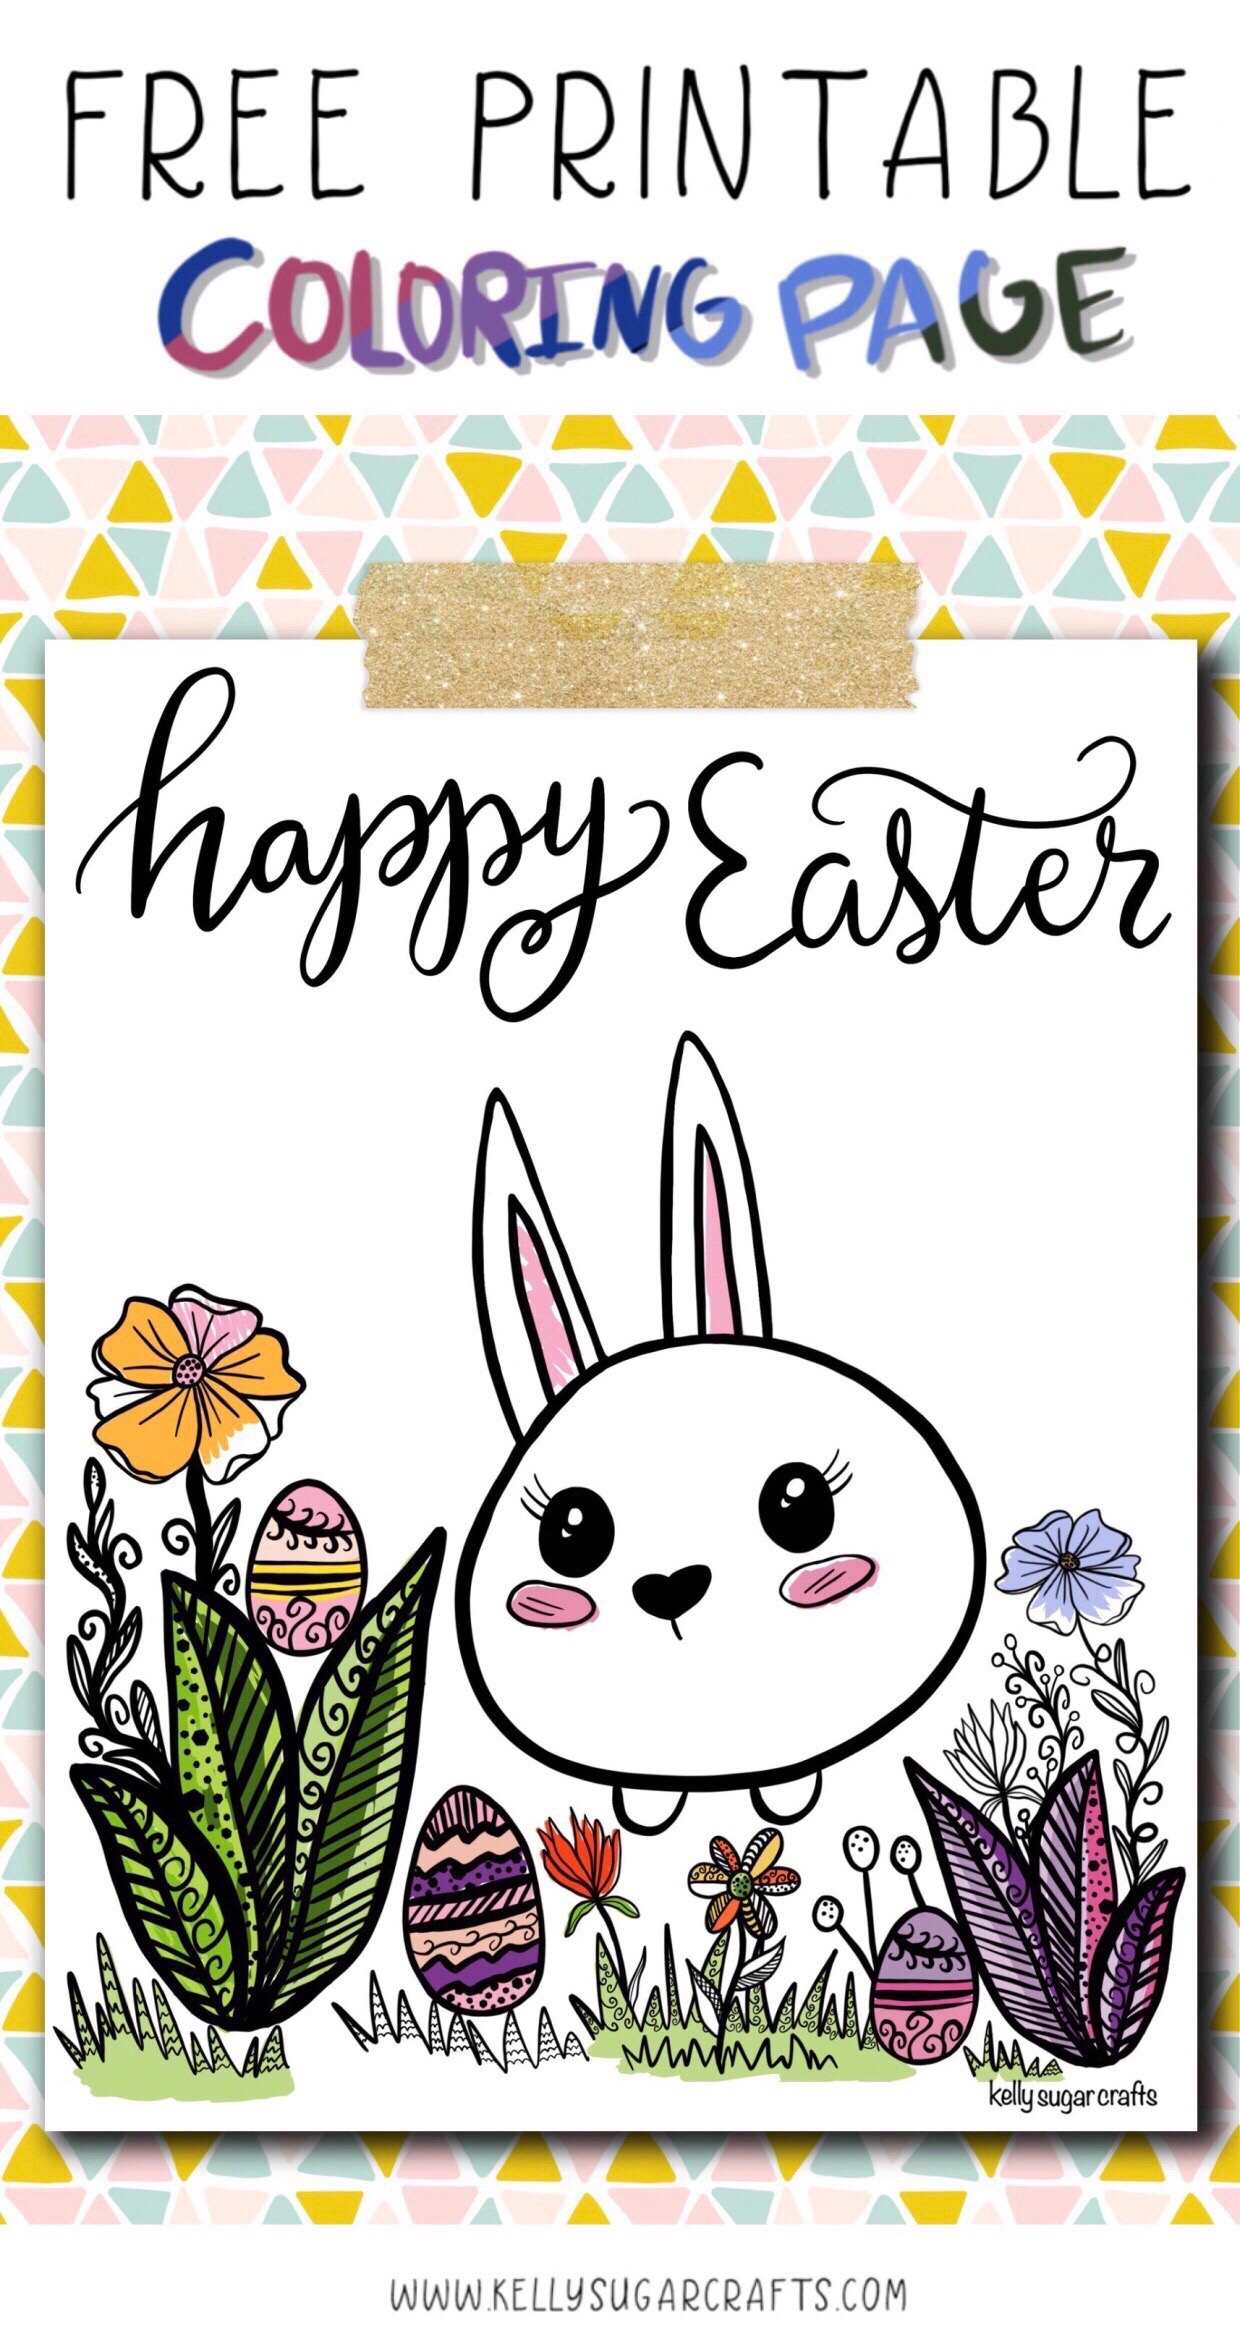 free printable easter coloring page kelly sugar crafts